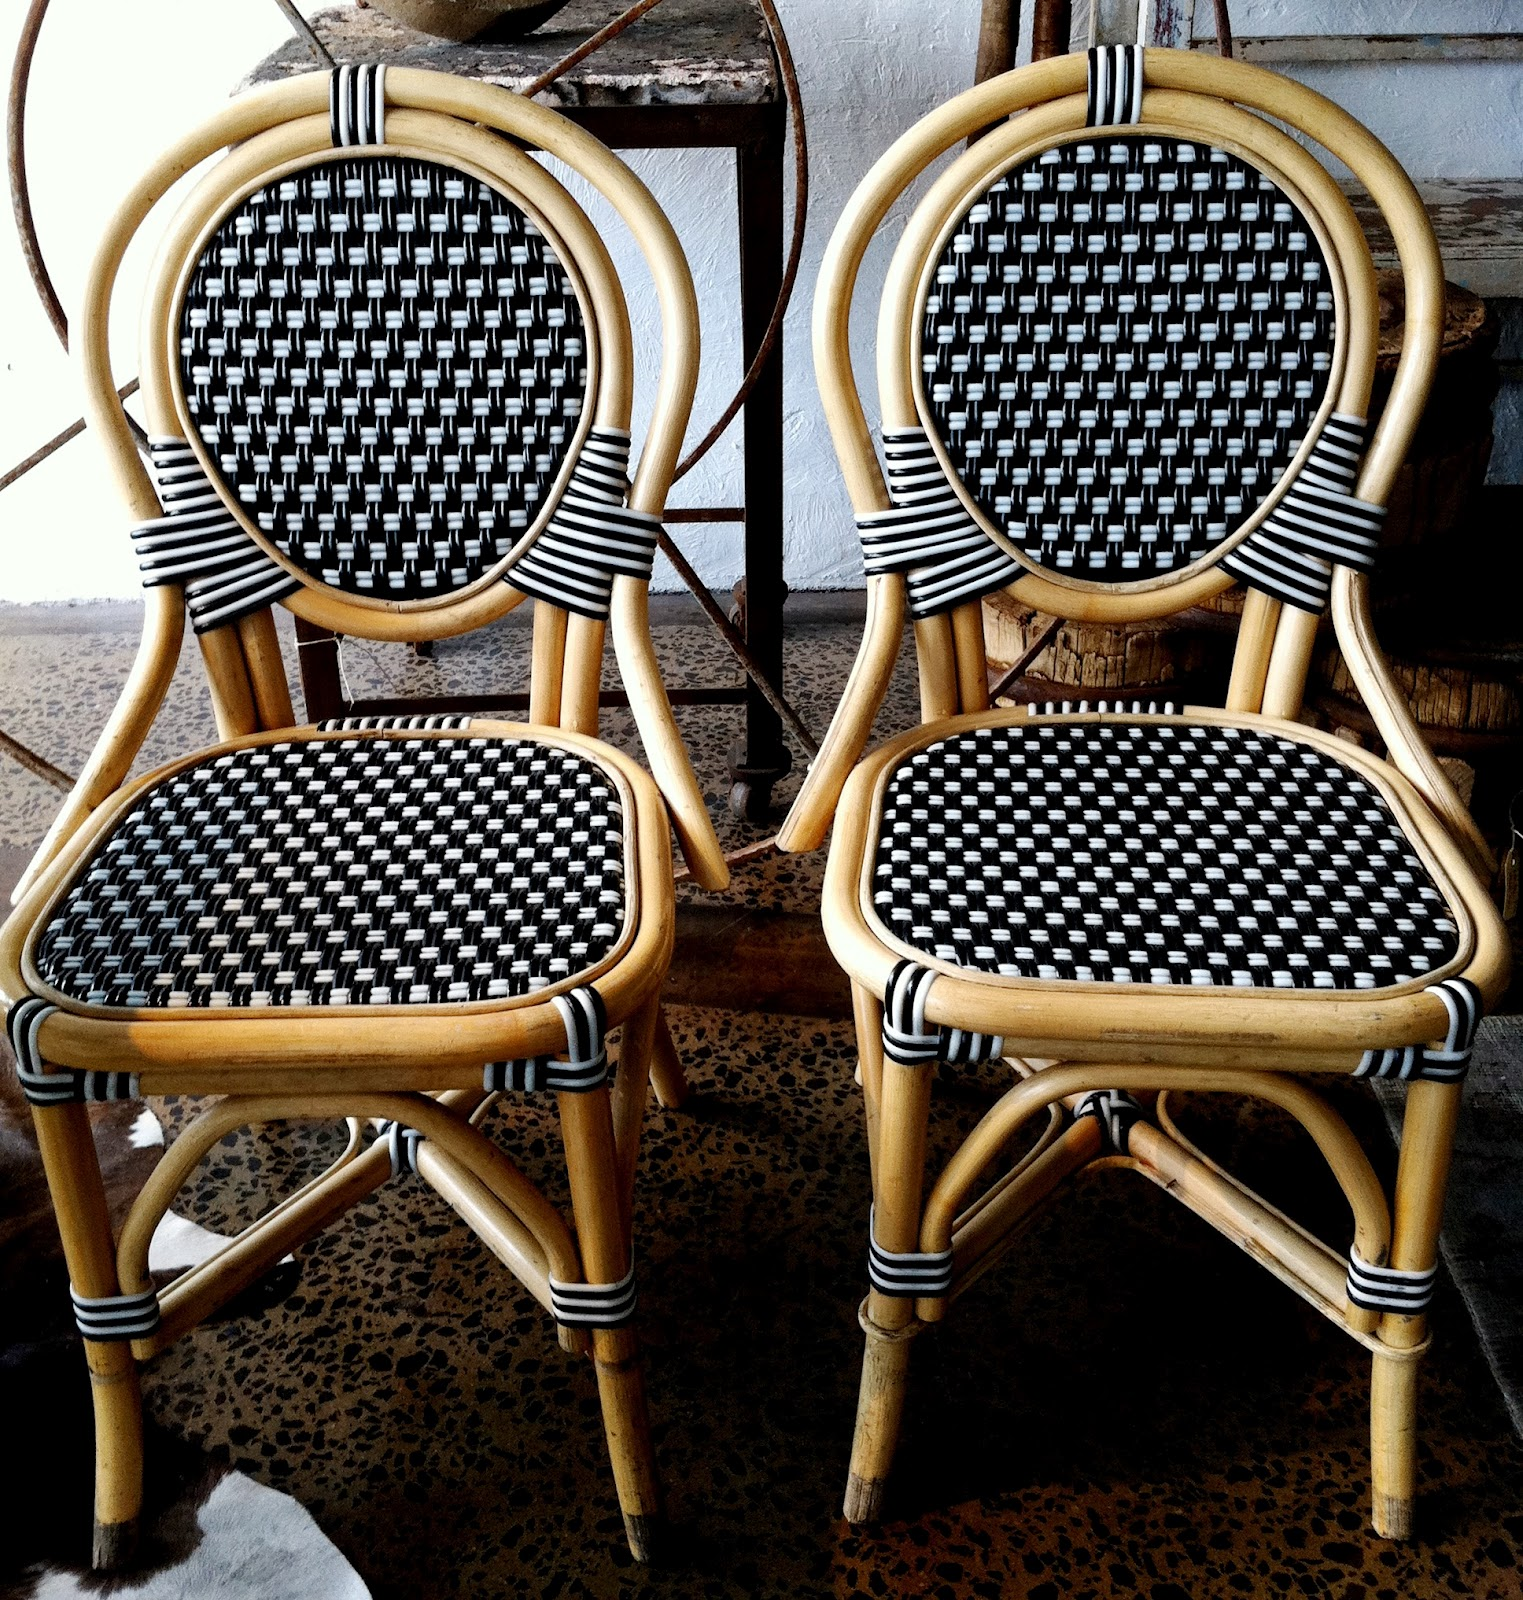 Parisian Cafe Chairs Pottery Barn Hang Around Chair Cover Montreux Trove Trading Co Came And Went